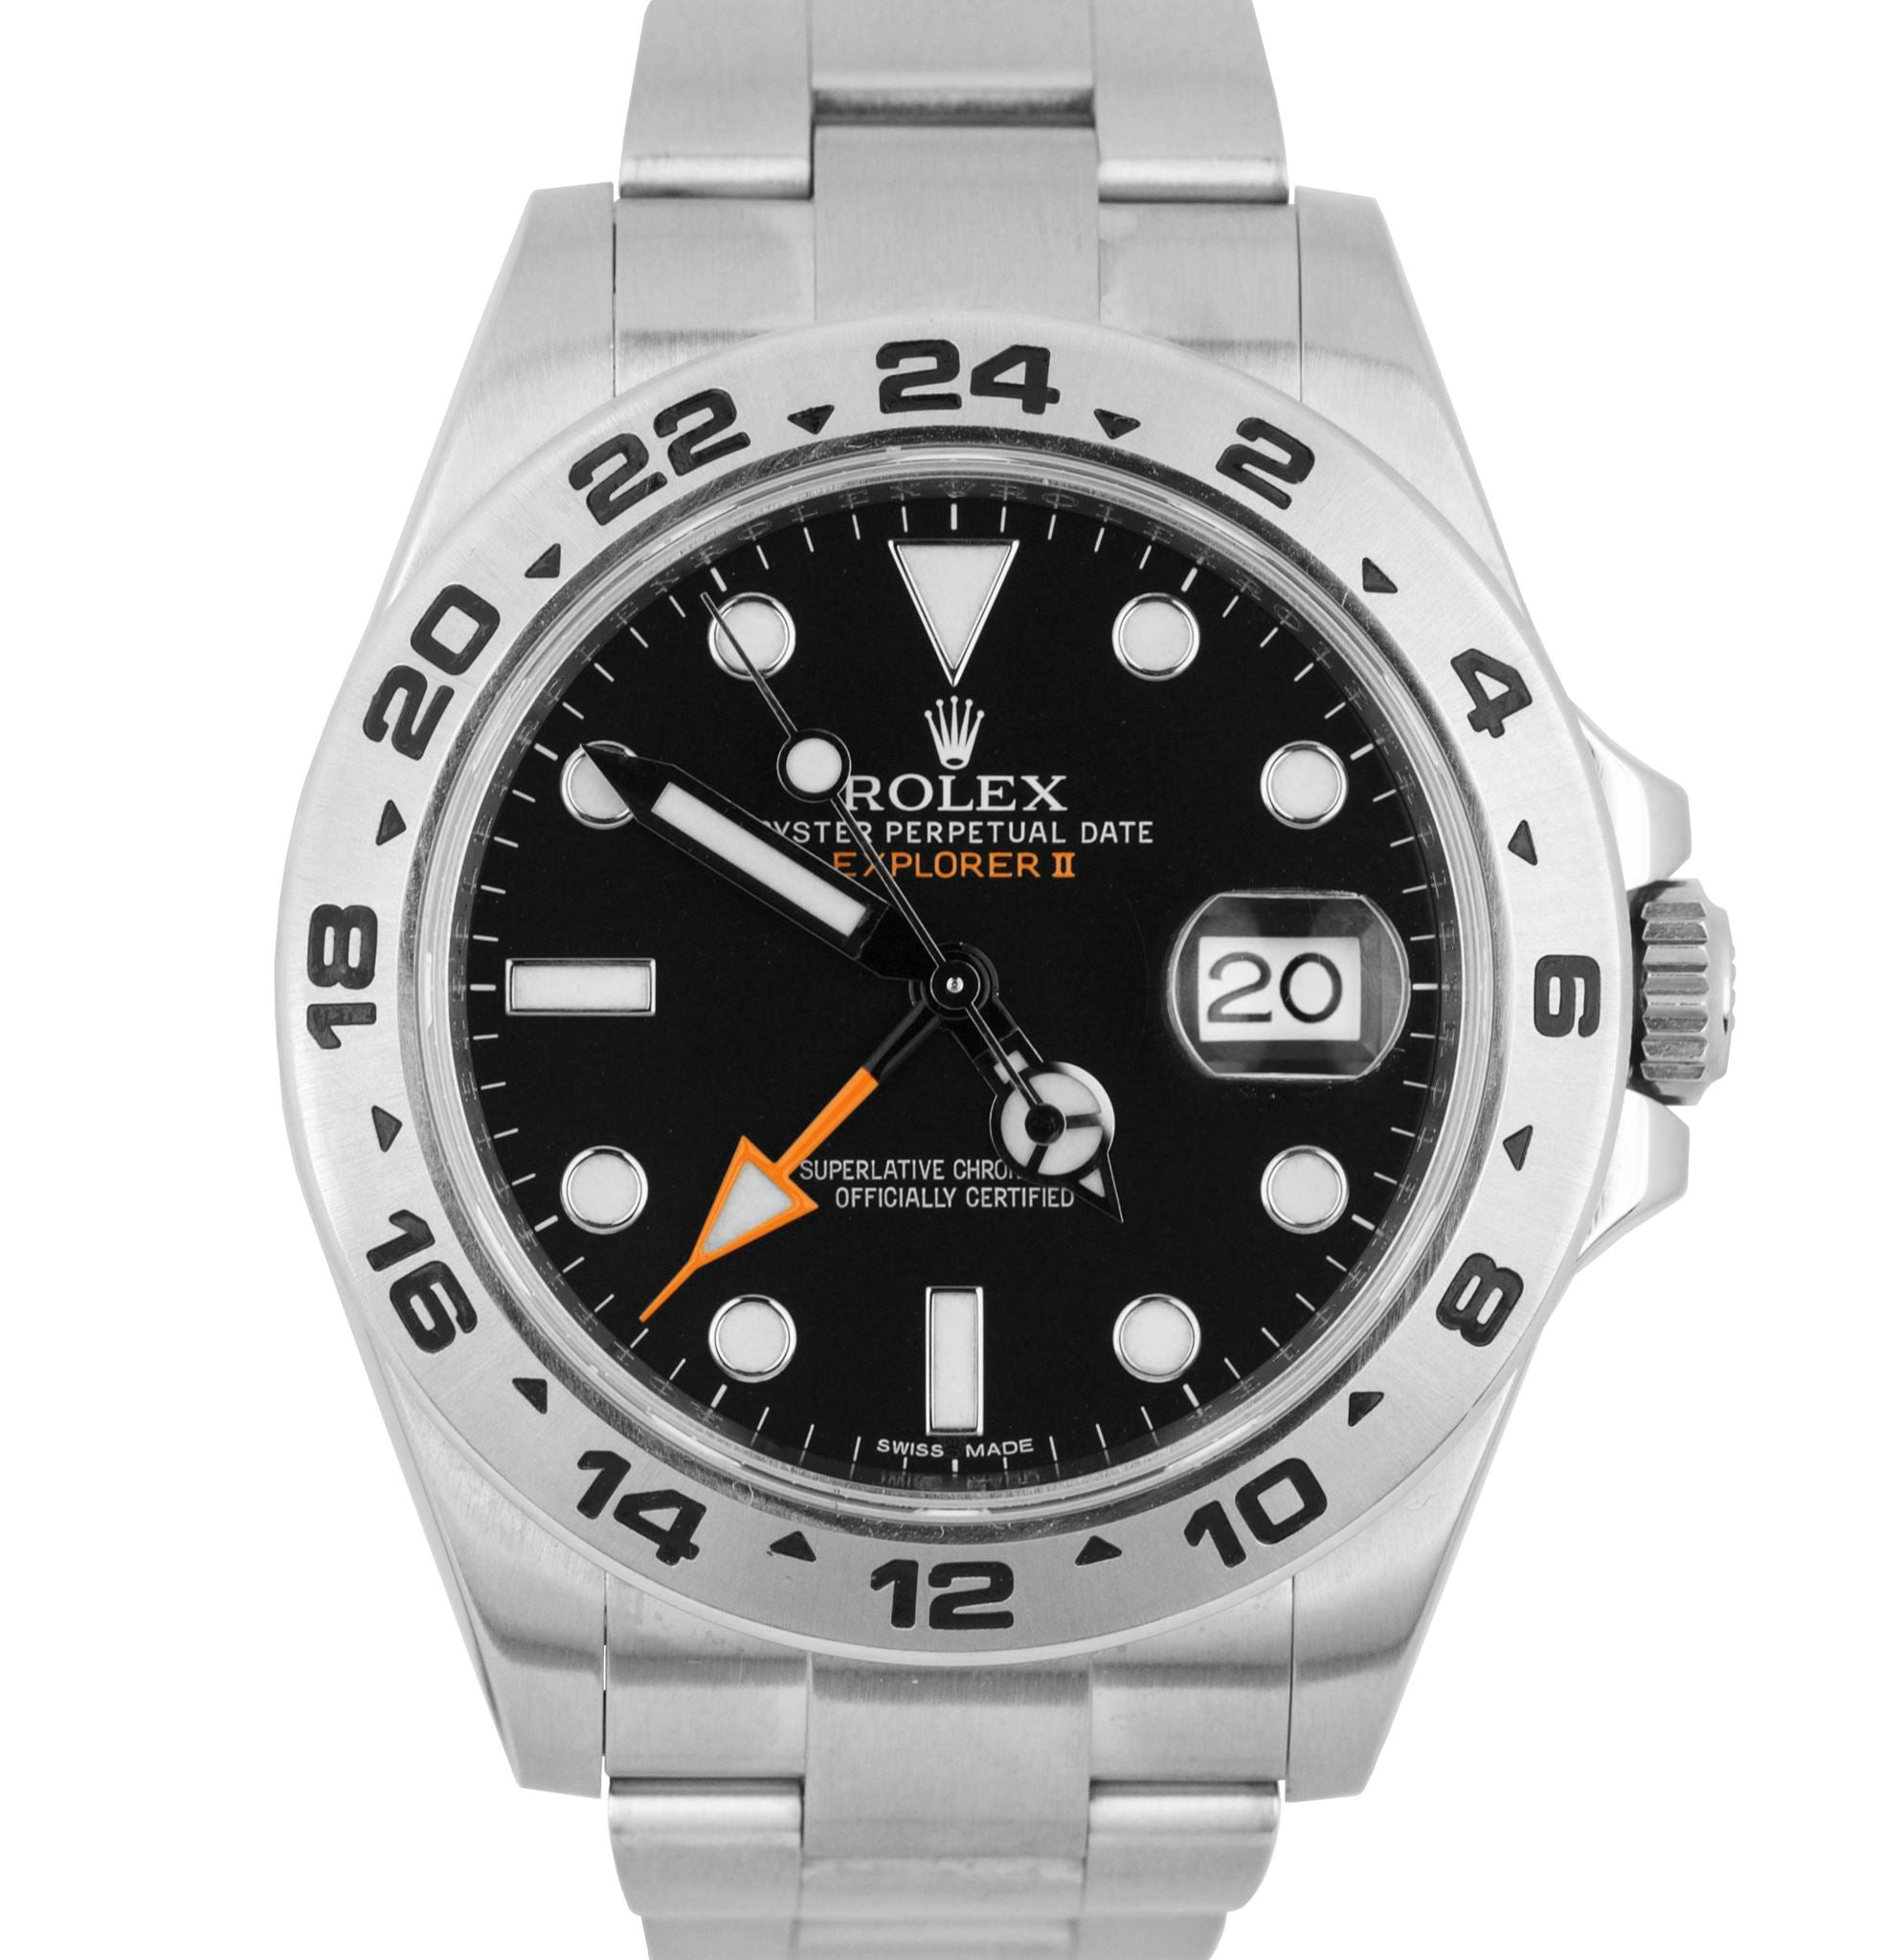 2016 FULL SET Rolex Explorer II 42mm 216570 Black Orange Steel GMT Date Watch